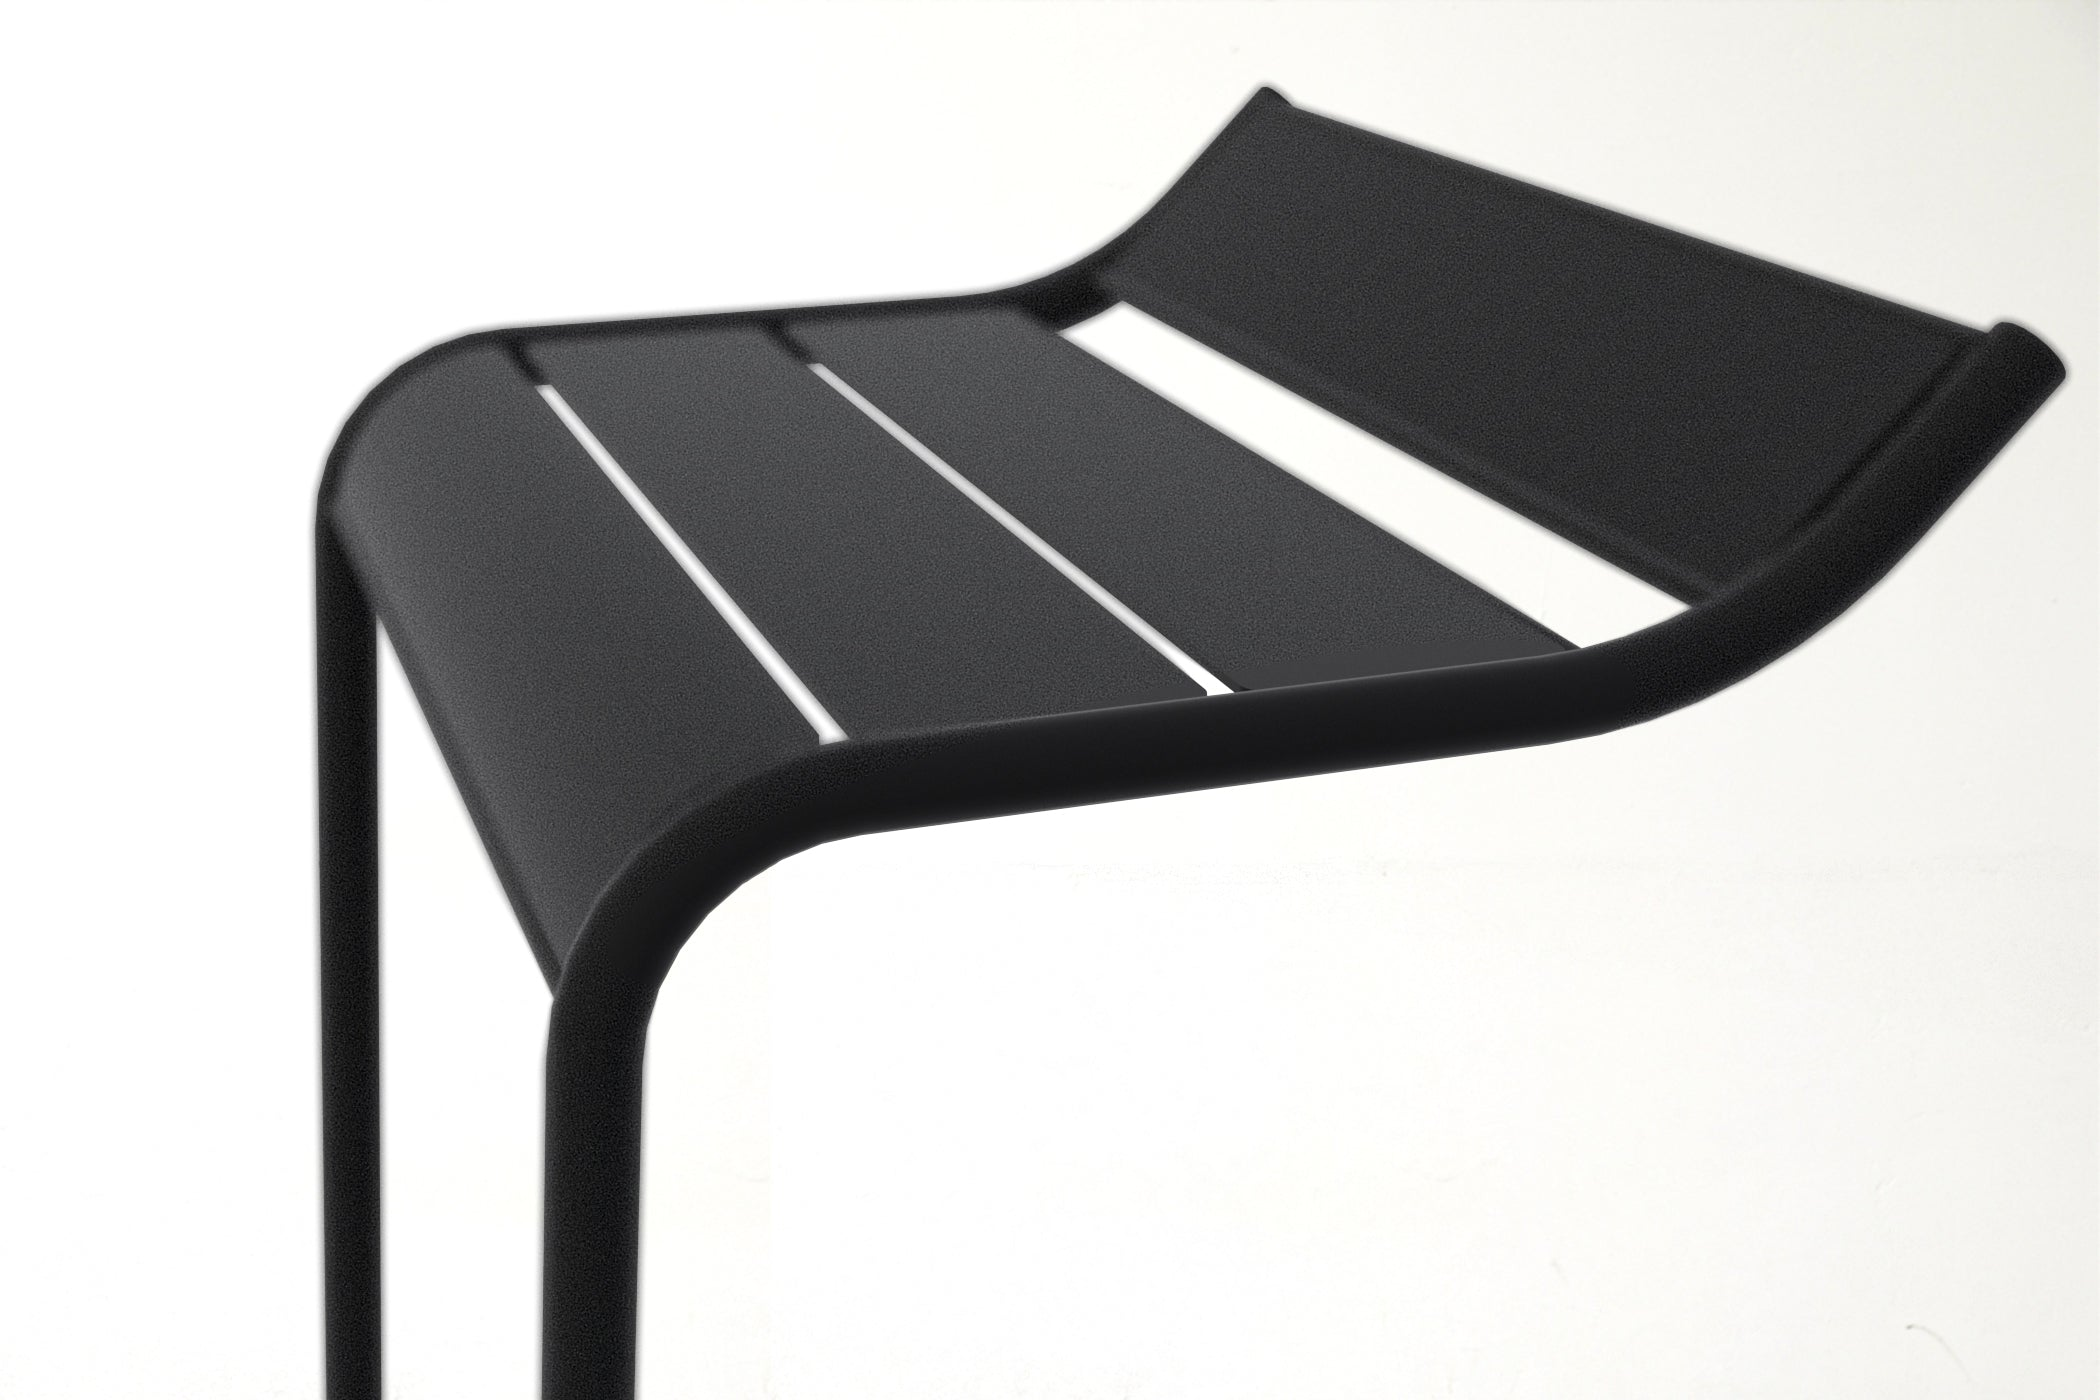 RAD Furniture's Signature Slatted Steel Bar Stool - detail